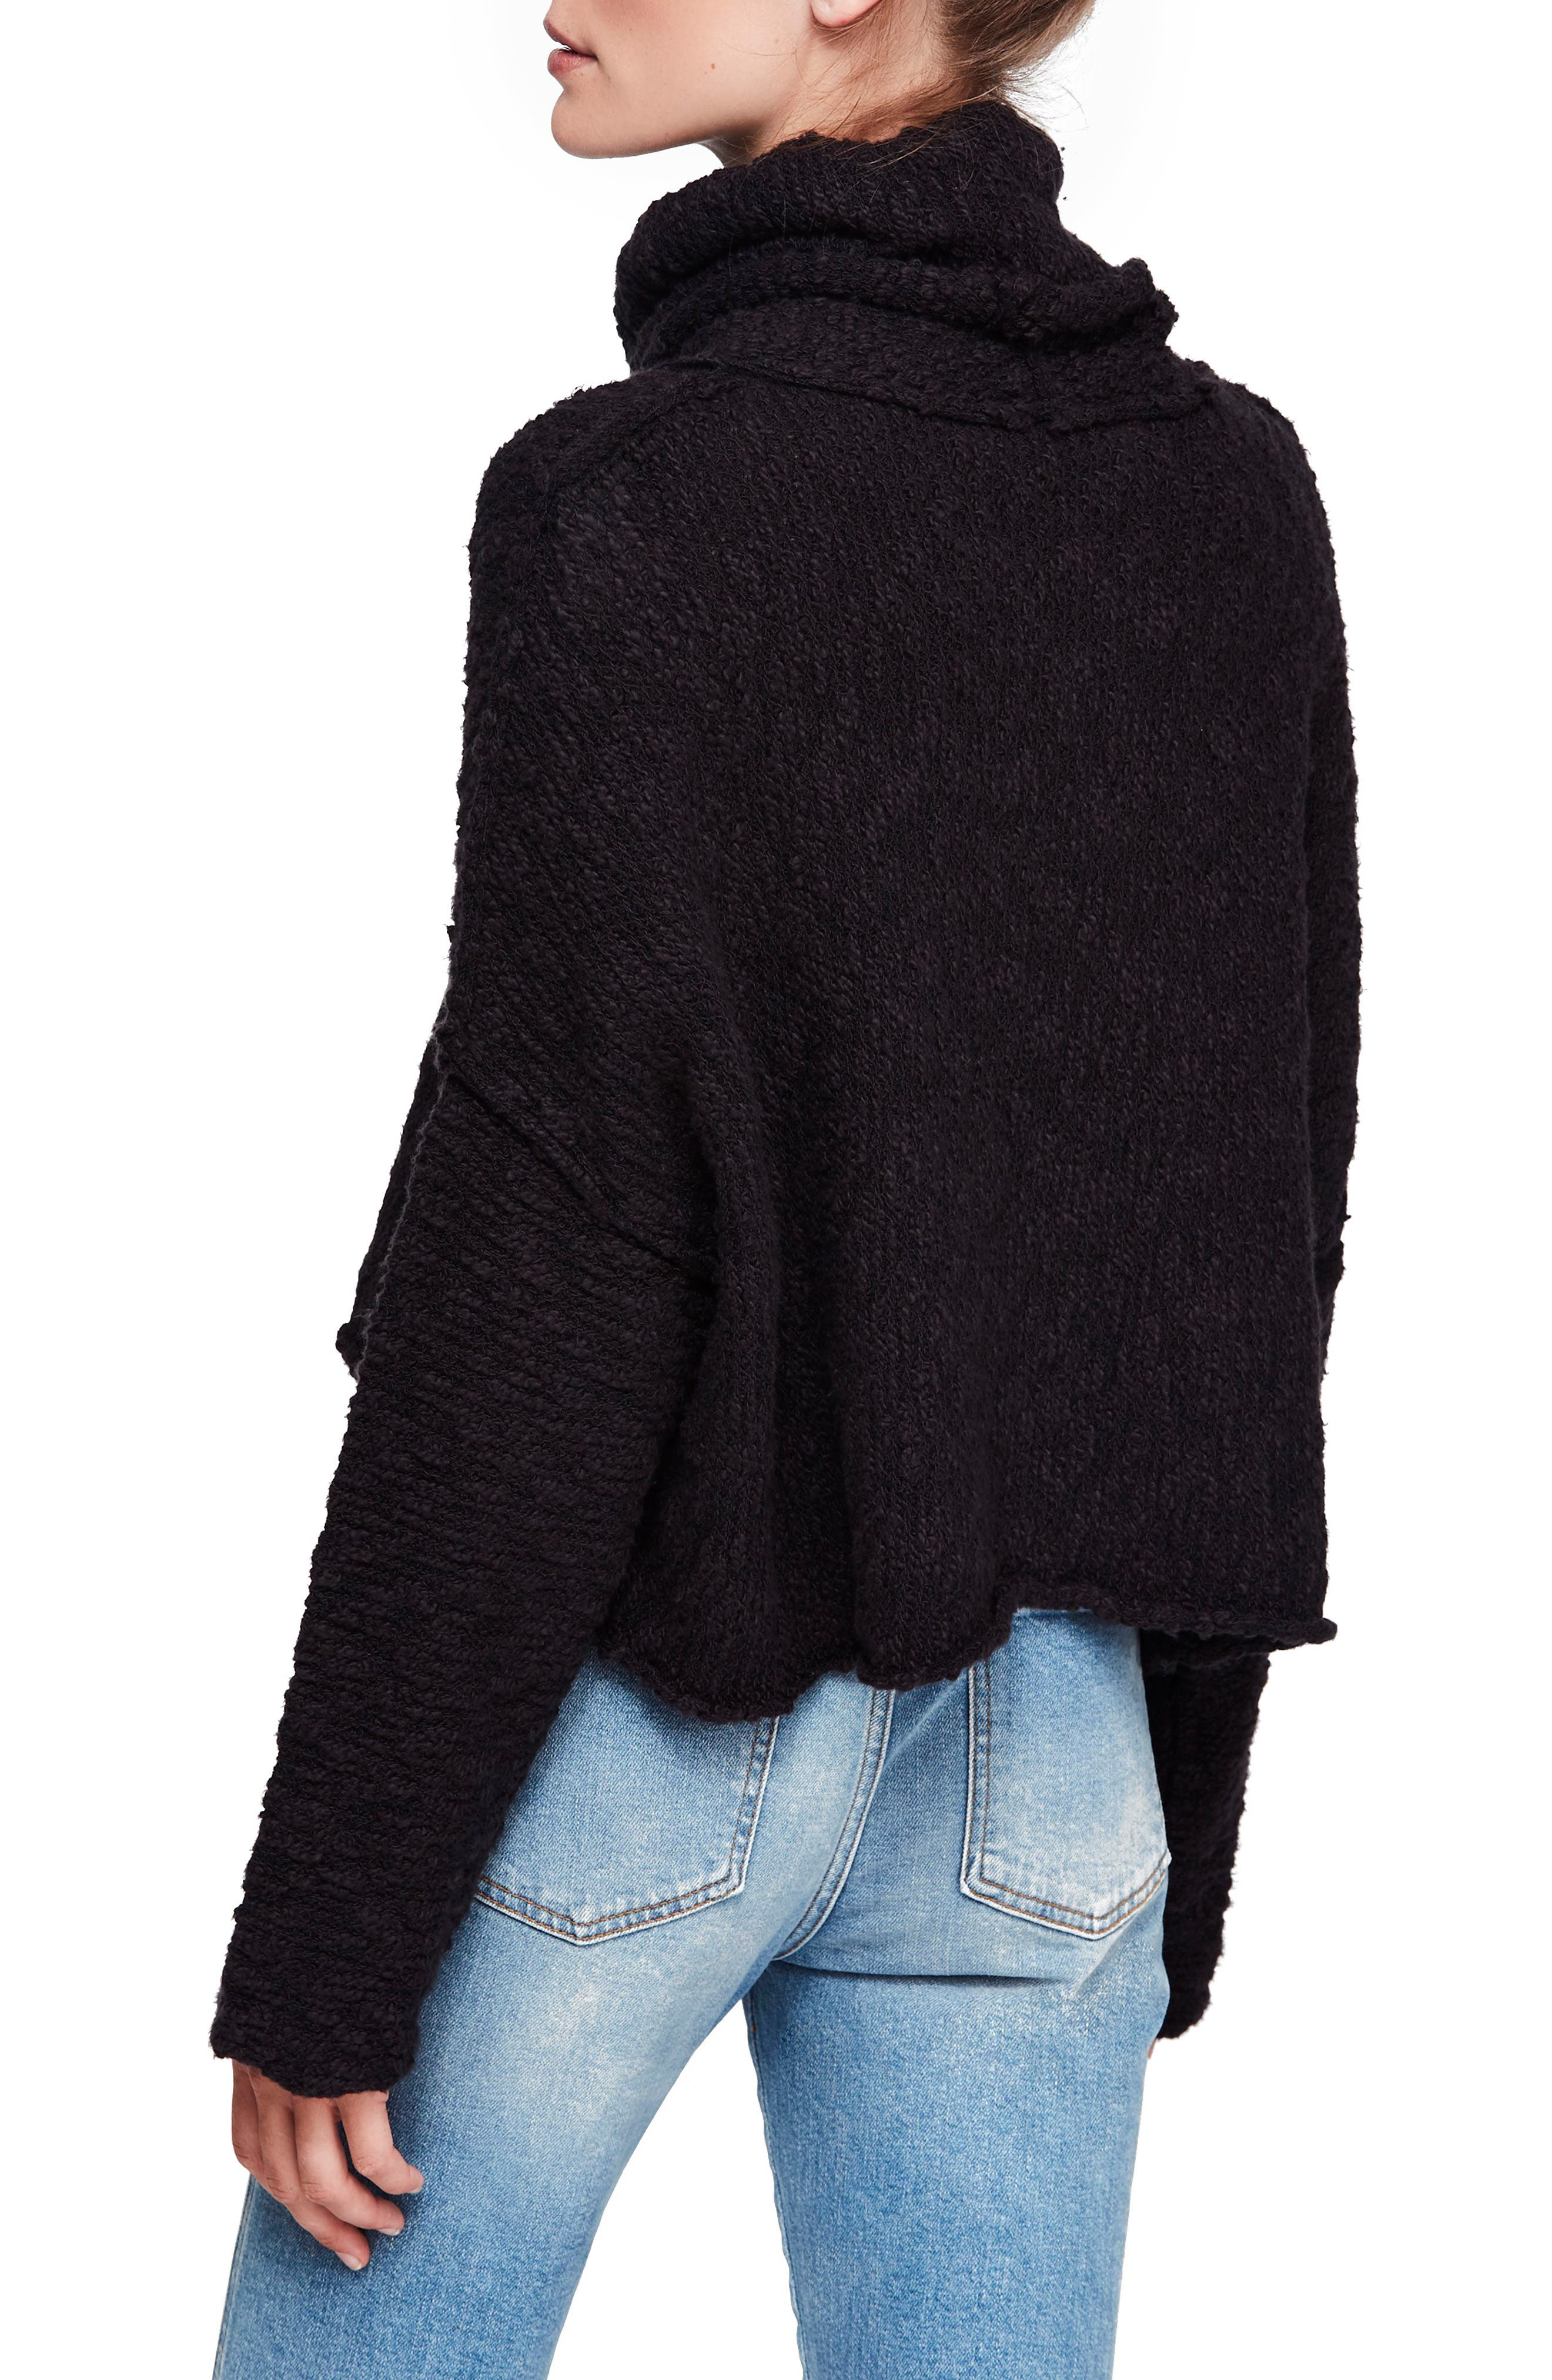 FREE PEOPLE,                             Big Easy Cowl Neck Crop Sweater,                             Alternate thumbnail 2, color,                             001